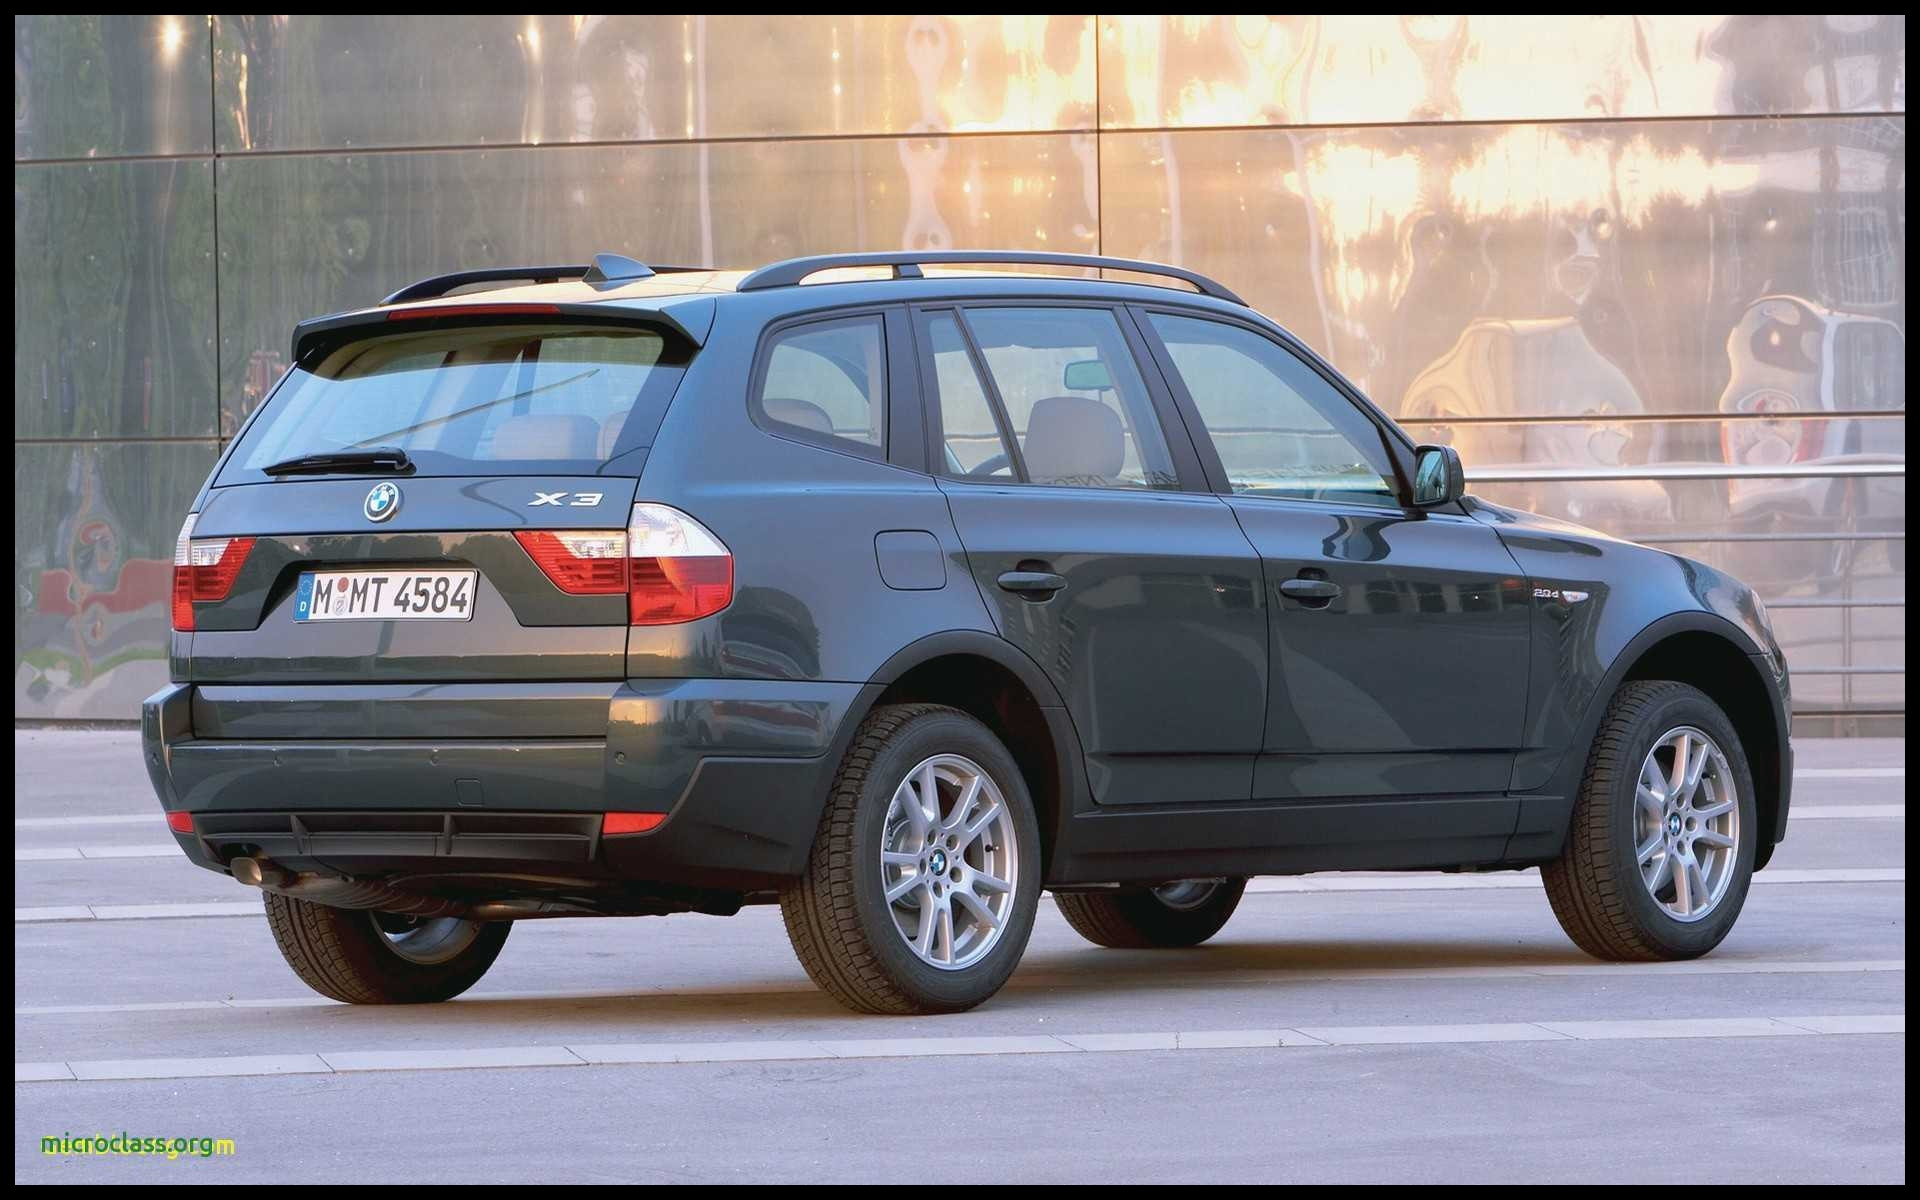 Amazing Wallpaper For Phone Hd Luxury Best Bmw X3 2 0d 2007 Lovely Hq Sports Car Wallpaper Bmw